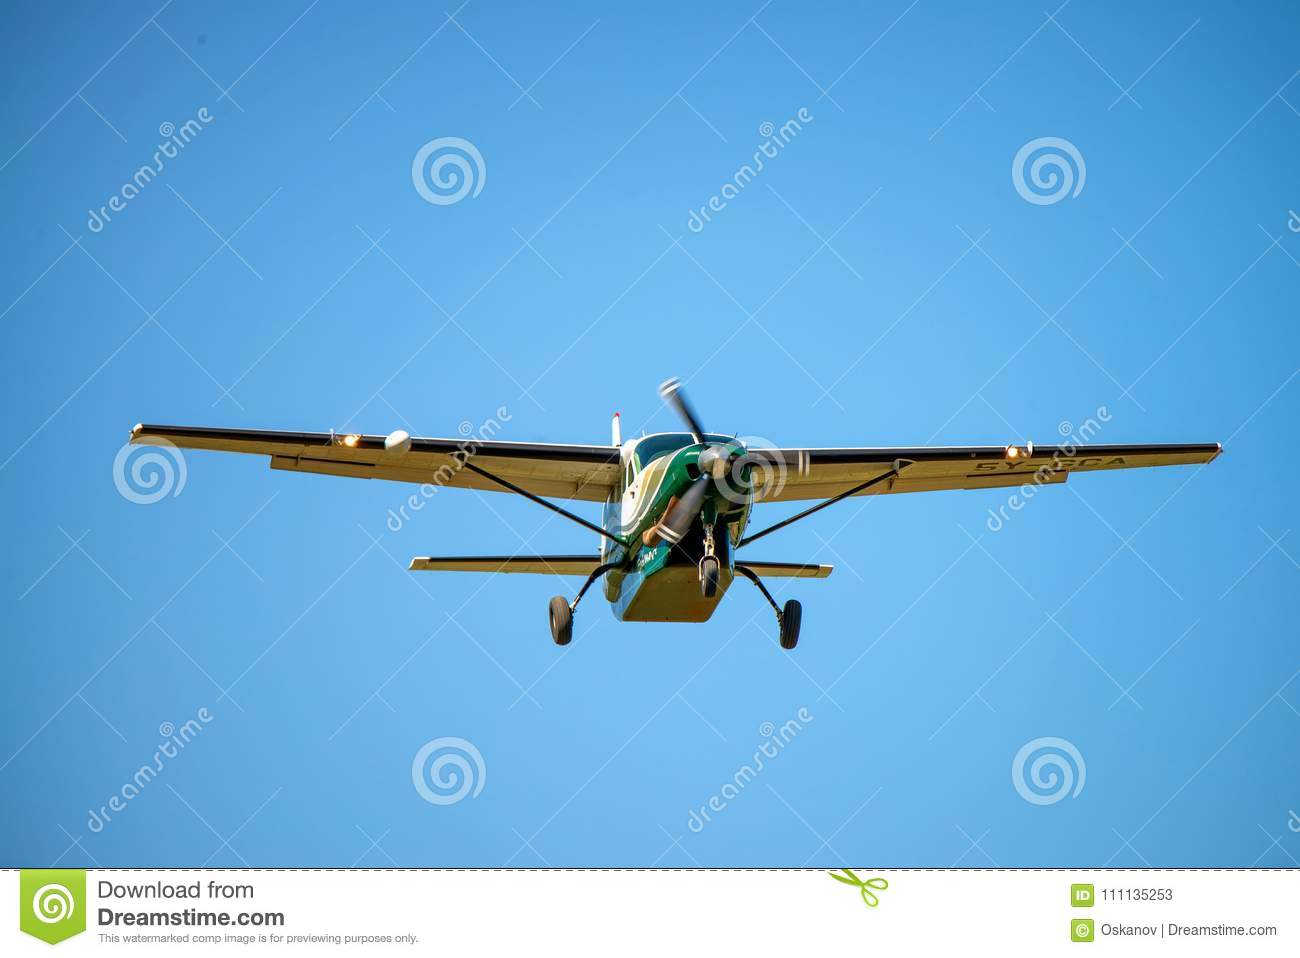 Cessna Plane Nairobi Kenya January 2 2015 Cessna Plane In Air Editorial